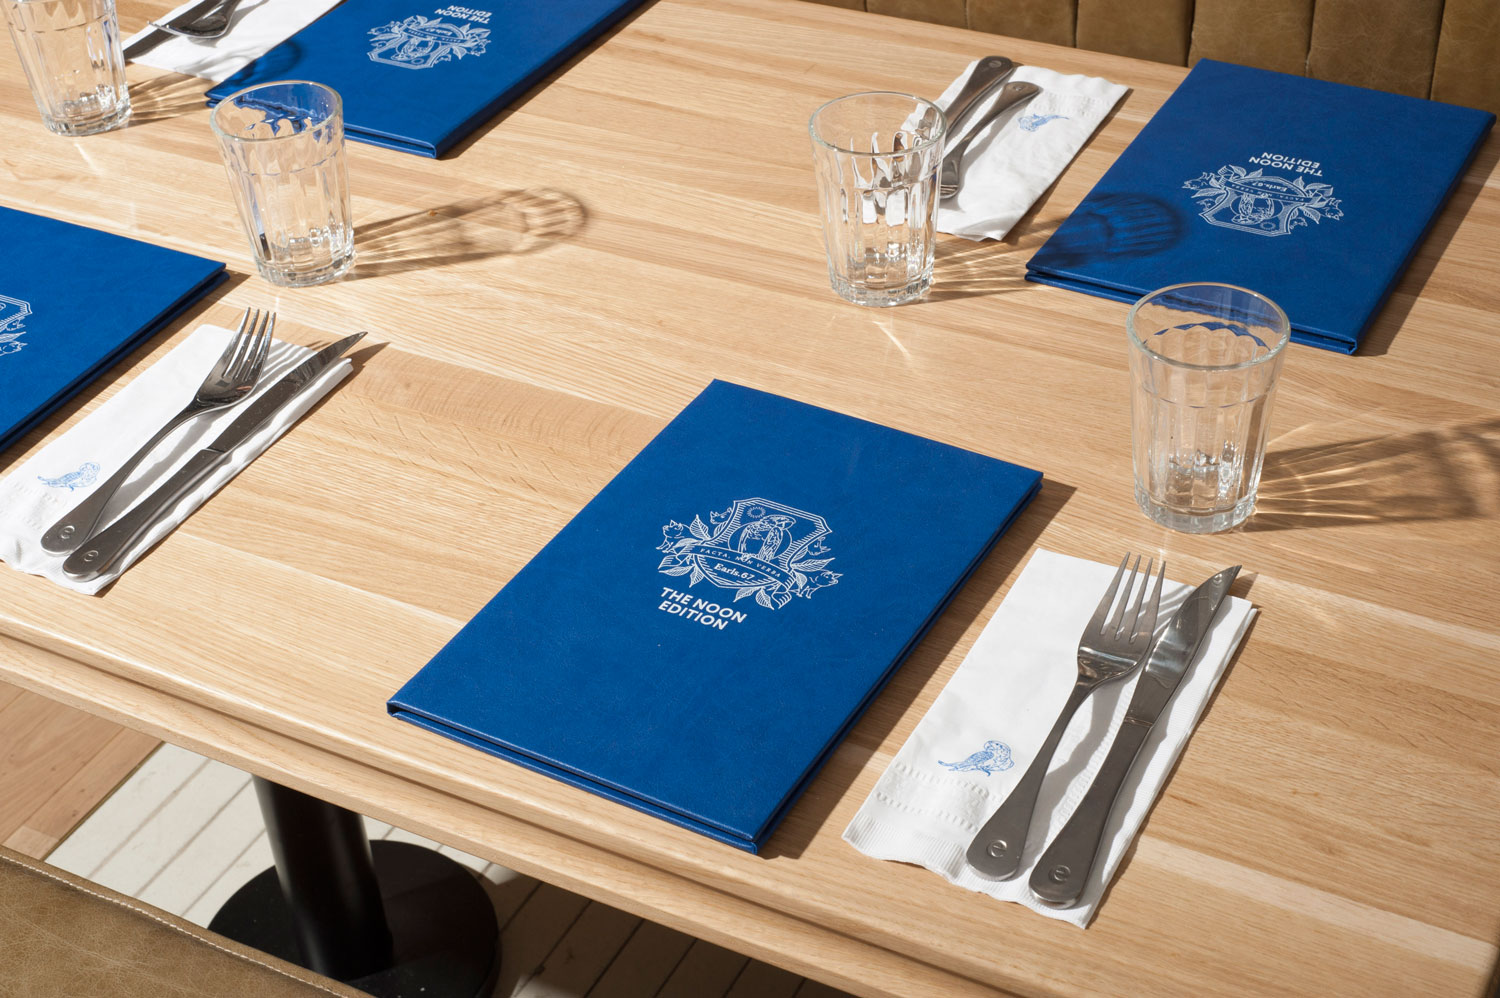 Earls 67 Concept Restaurant in Calgary by Ste. Marie   Yellowtrace